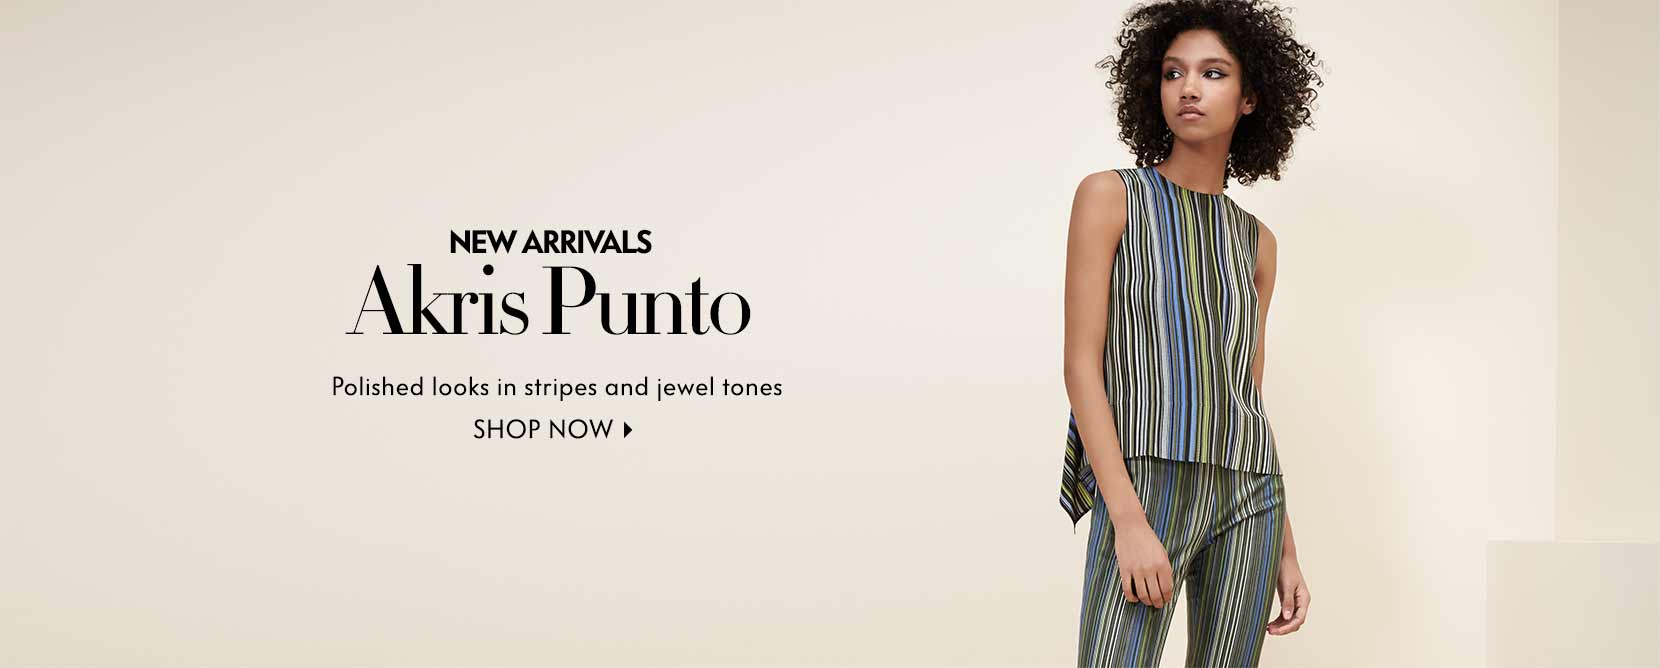 New arrivals Akris Punto polished looks in stripes and jewel tones